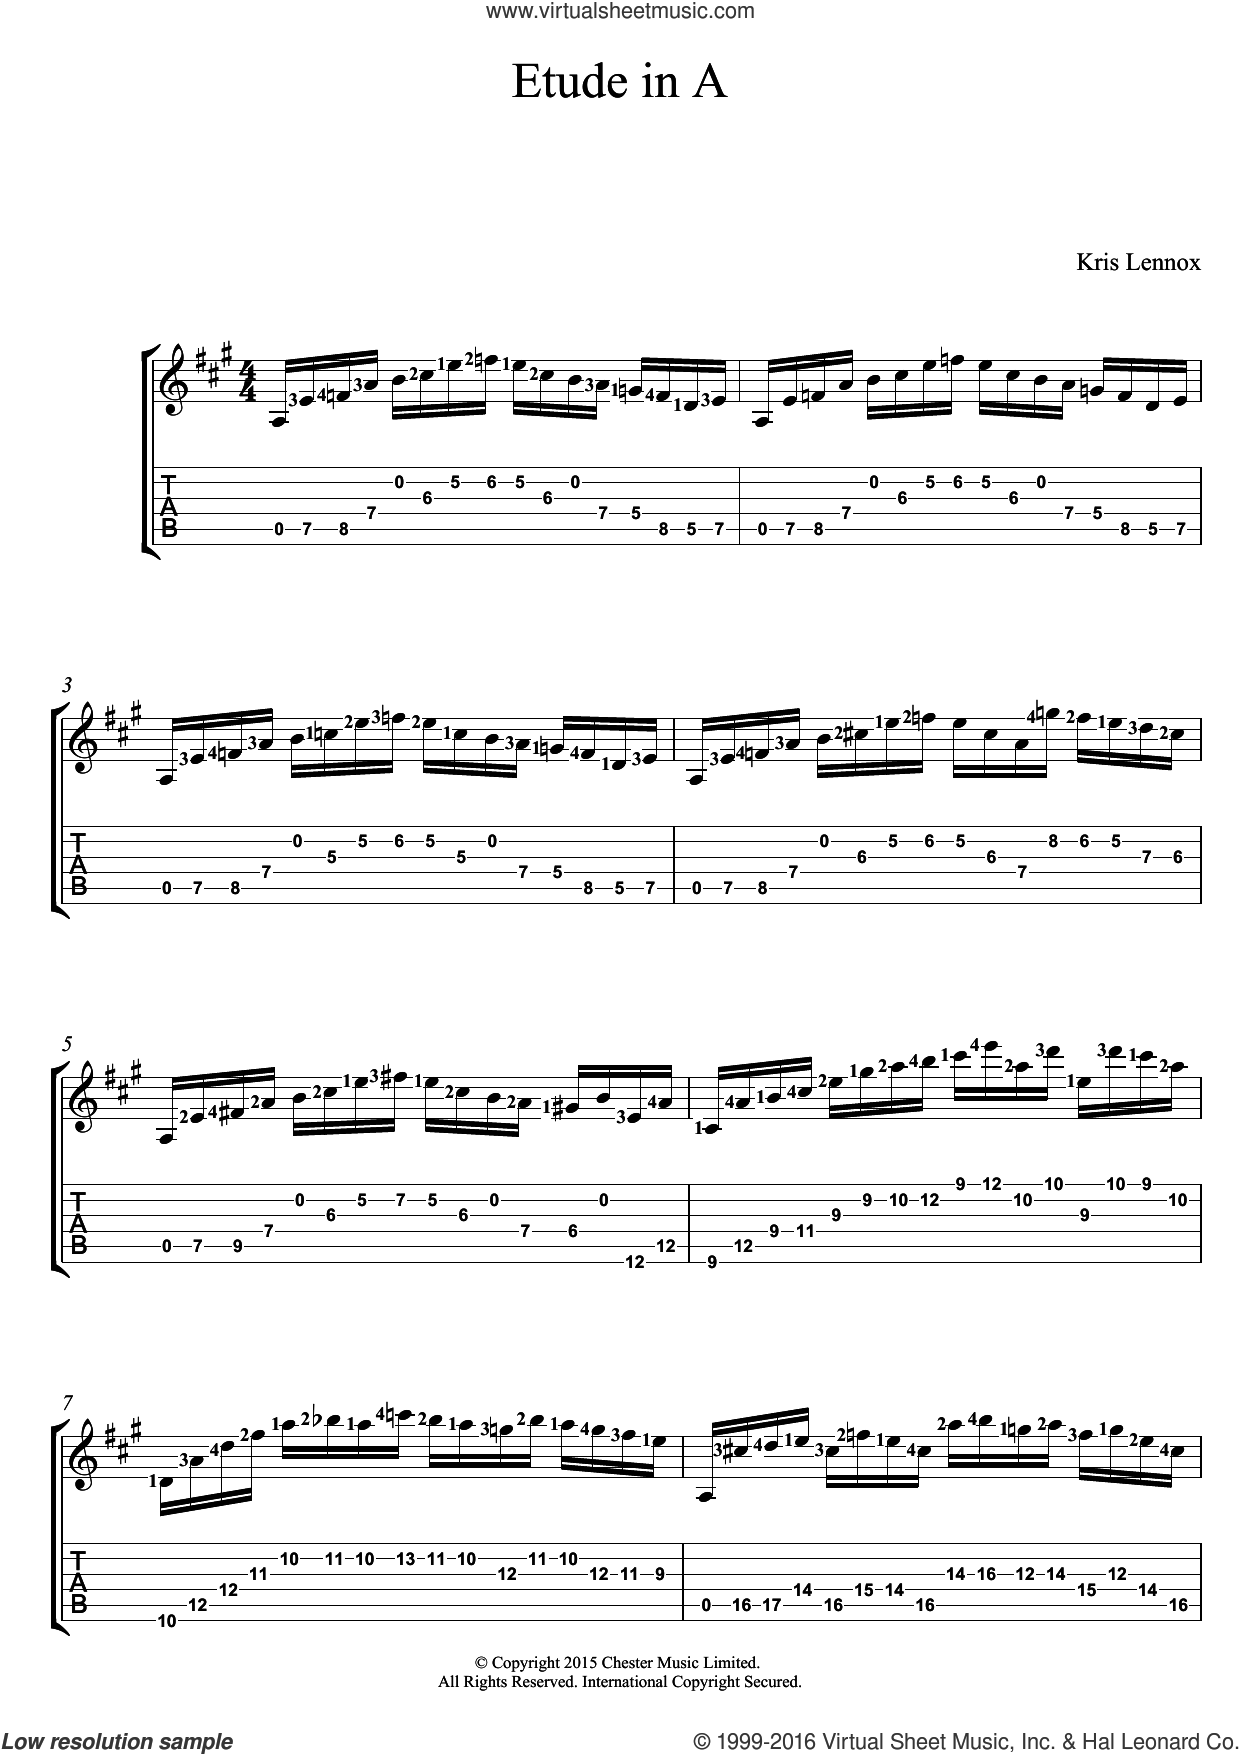 Etude In A sheet music for guitar (tablature) by Kris Lennox, intermediate skill level